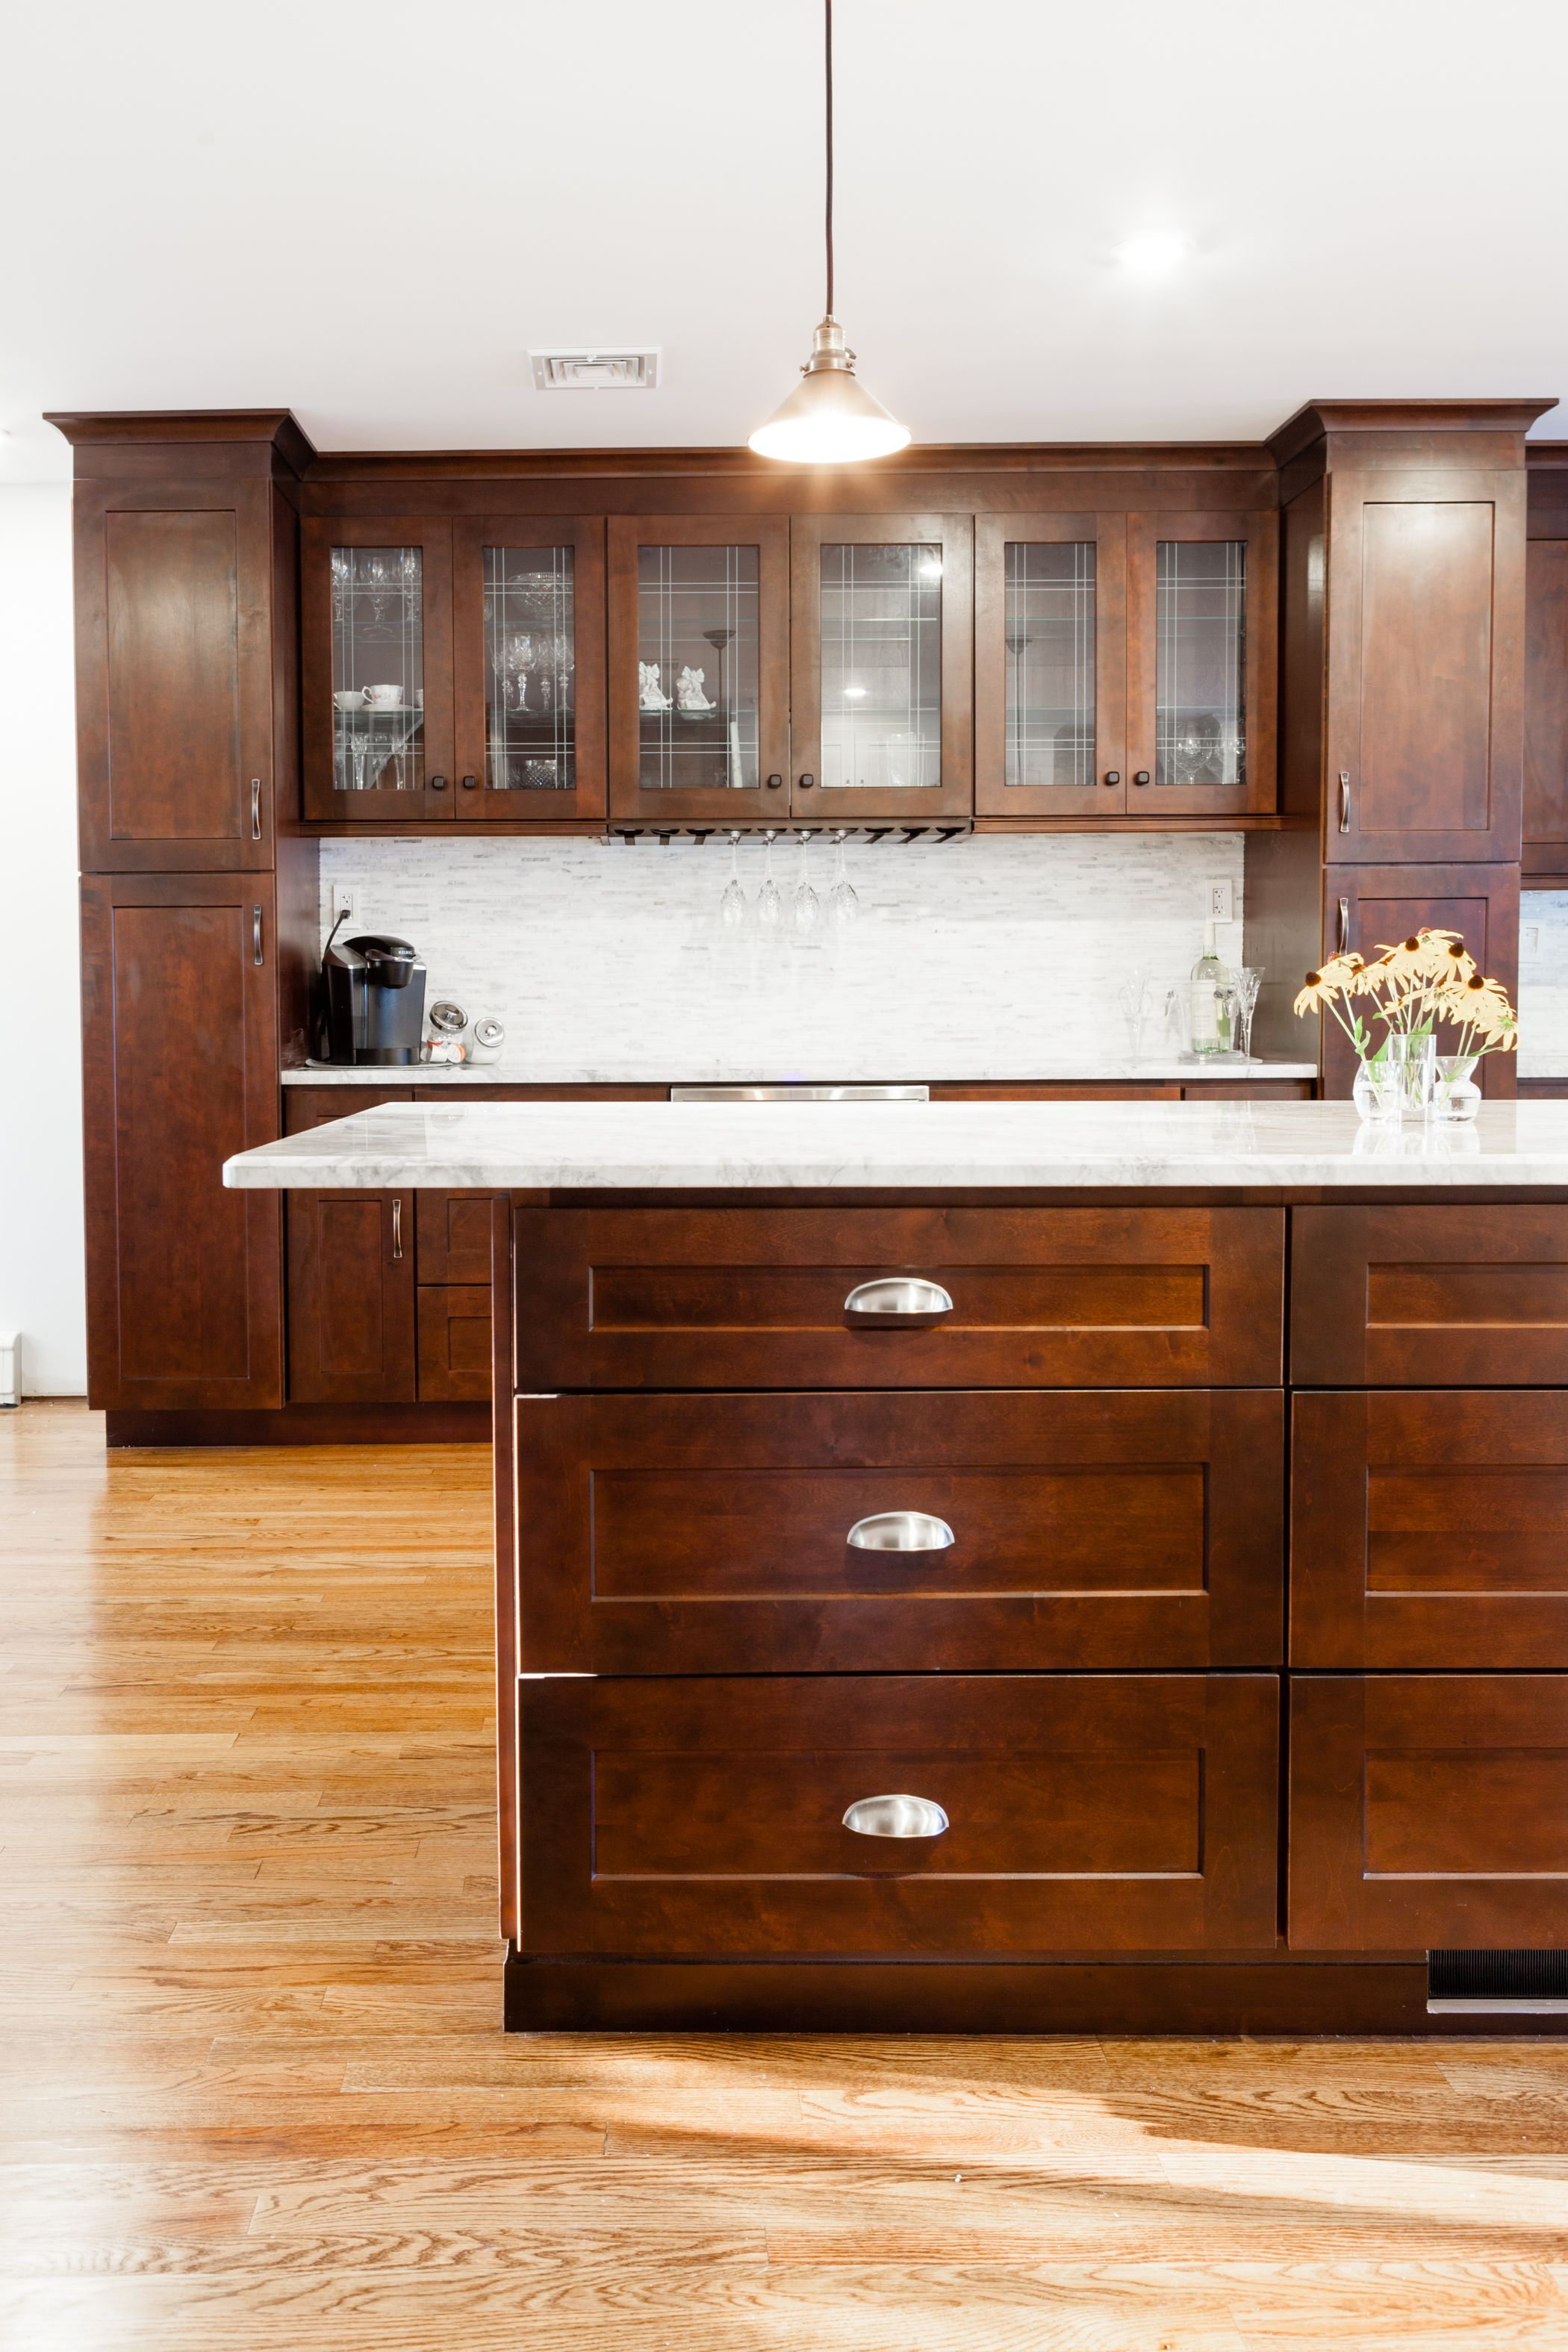 J K Modern Cabinets In Java Coffee Finish Style S1 Modern Kitchen Materials Kitchen Cabinets Decor Old Kitchen Cabinets